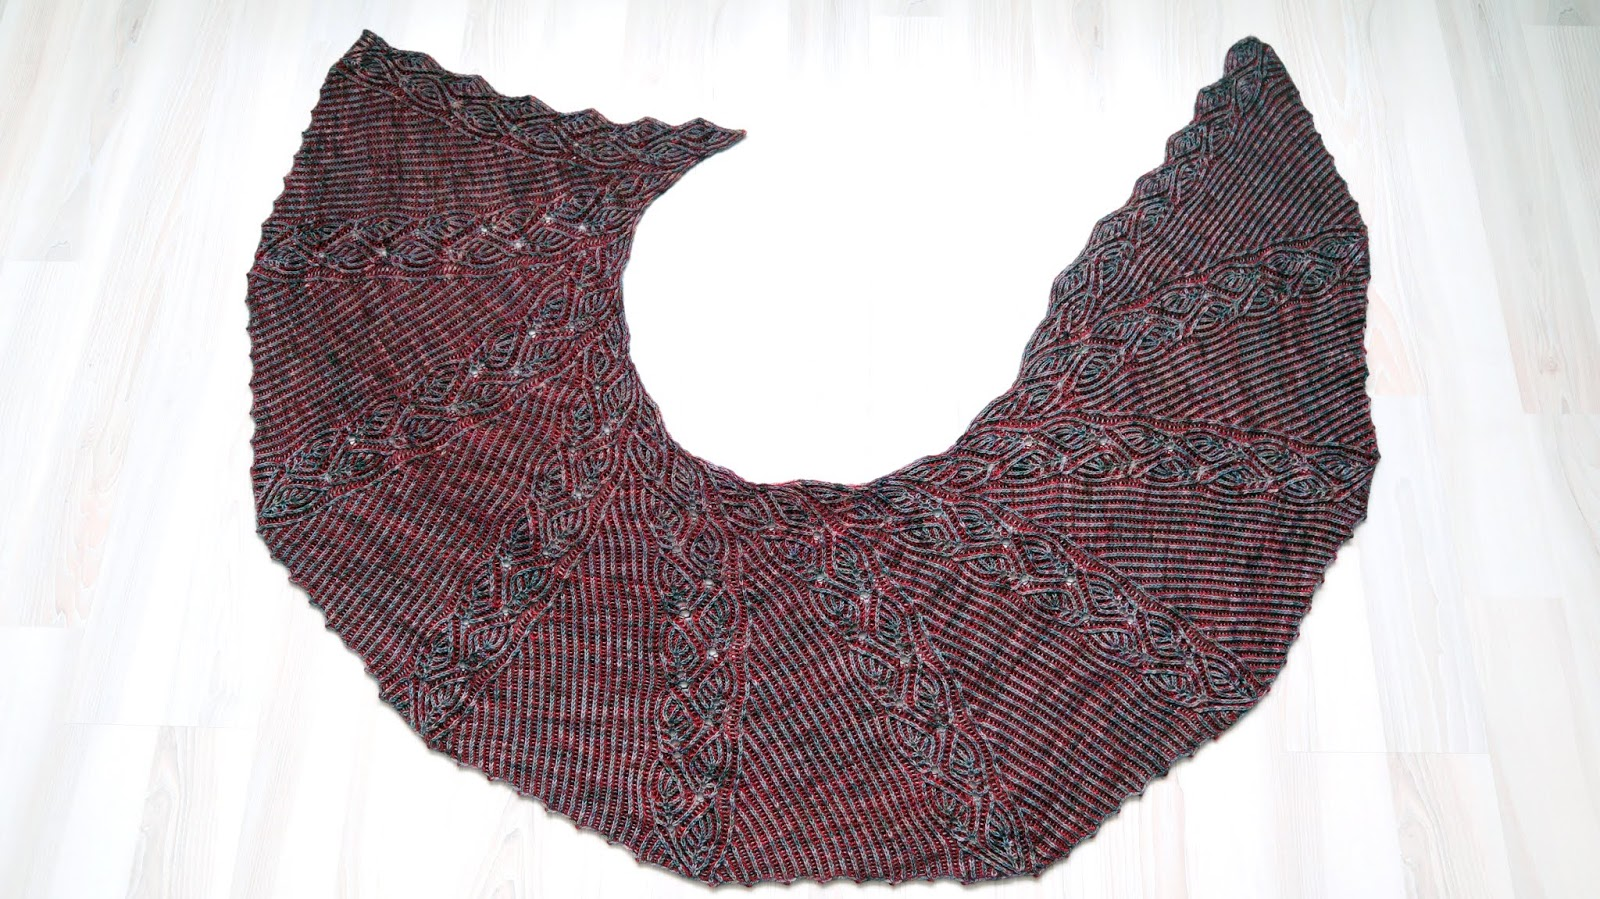 Foliage Shawl - Brioche Knitting